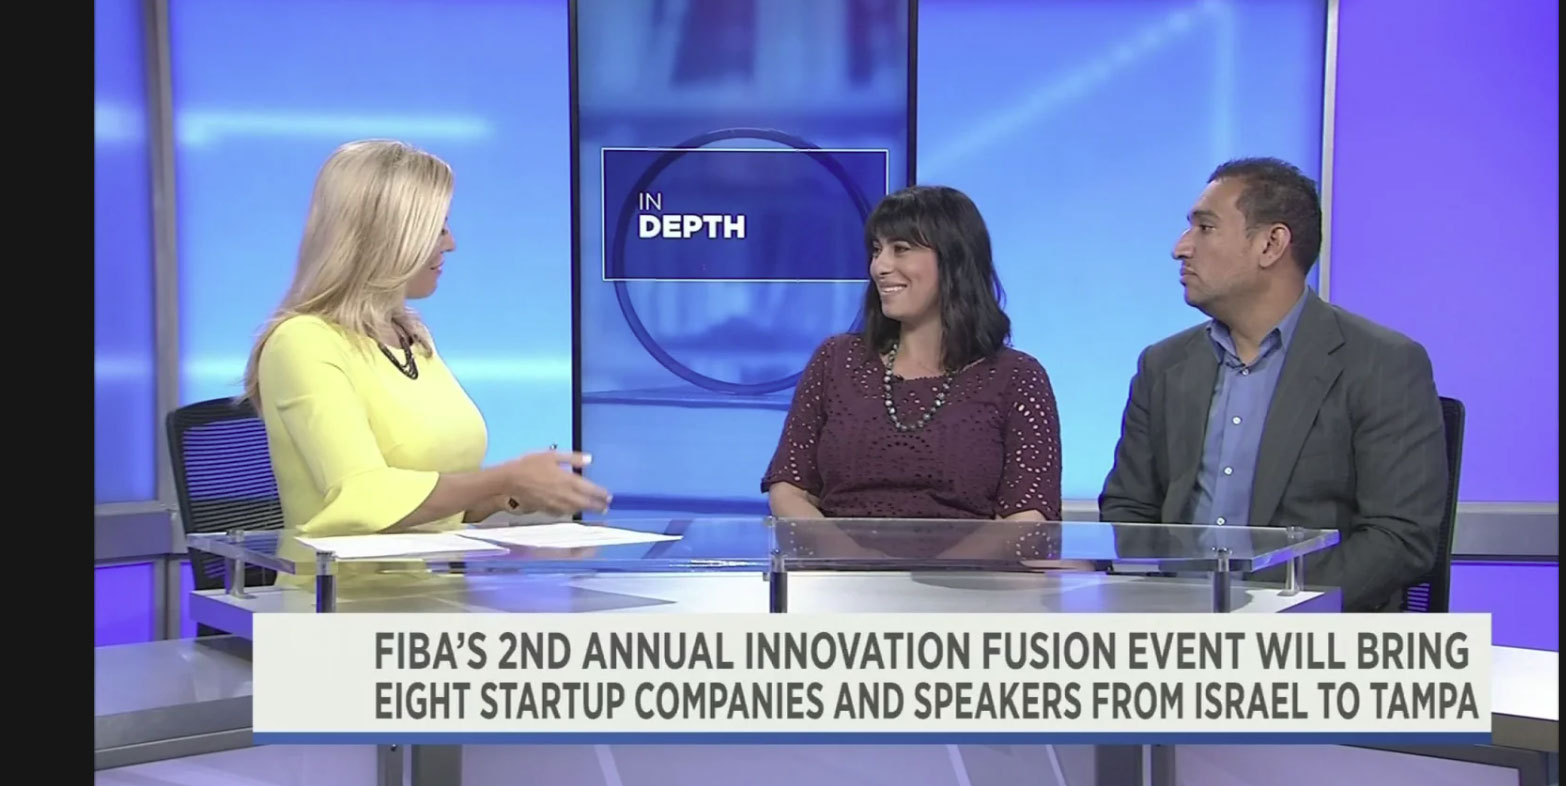 FIBA: Rachel Feinman discusses Innovation Fusion on Bay News 9